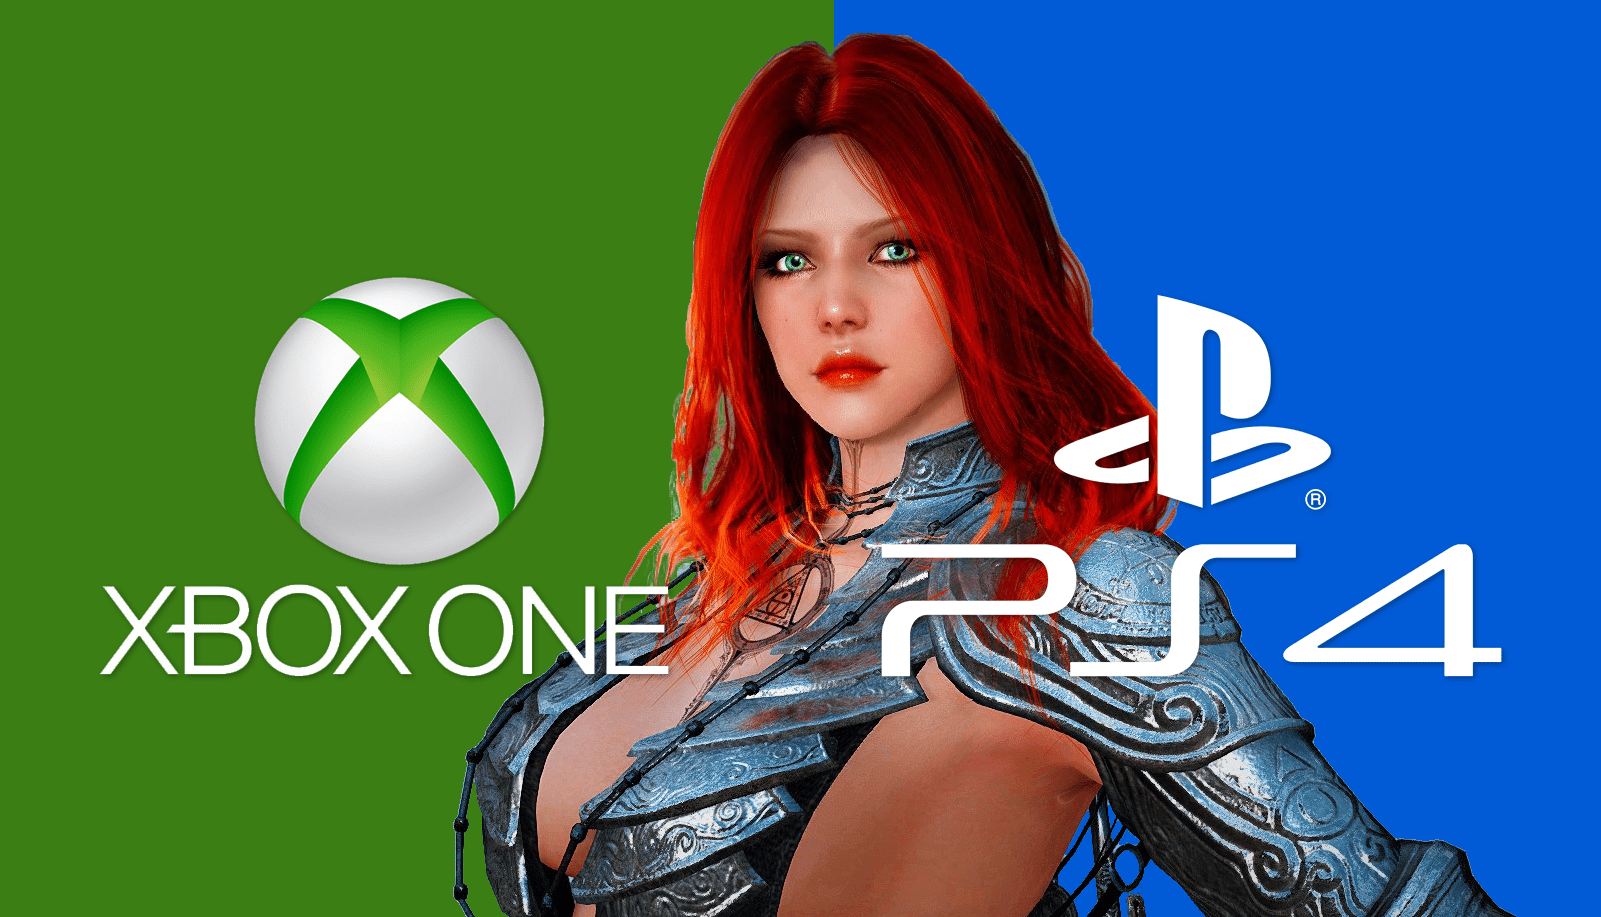 Black Desert Online Deserves PS4 And Xbox One Ports With